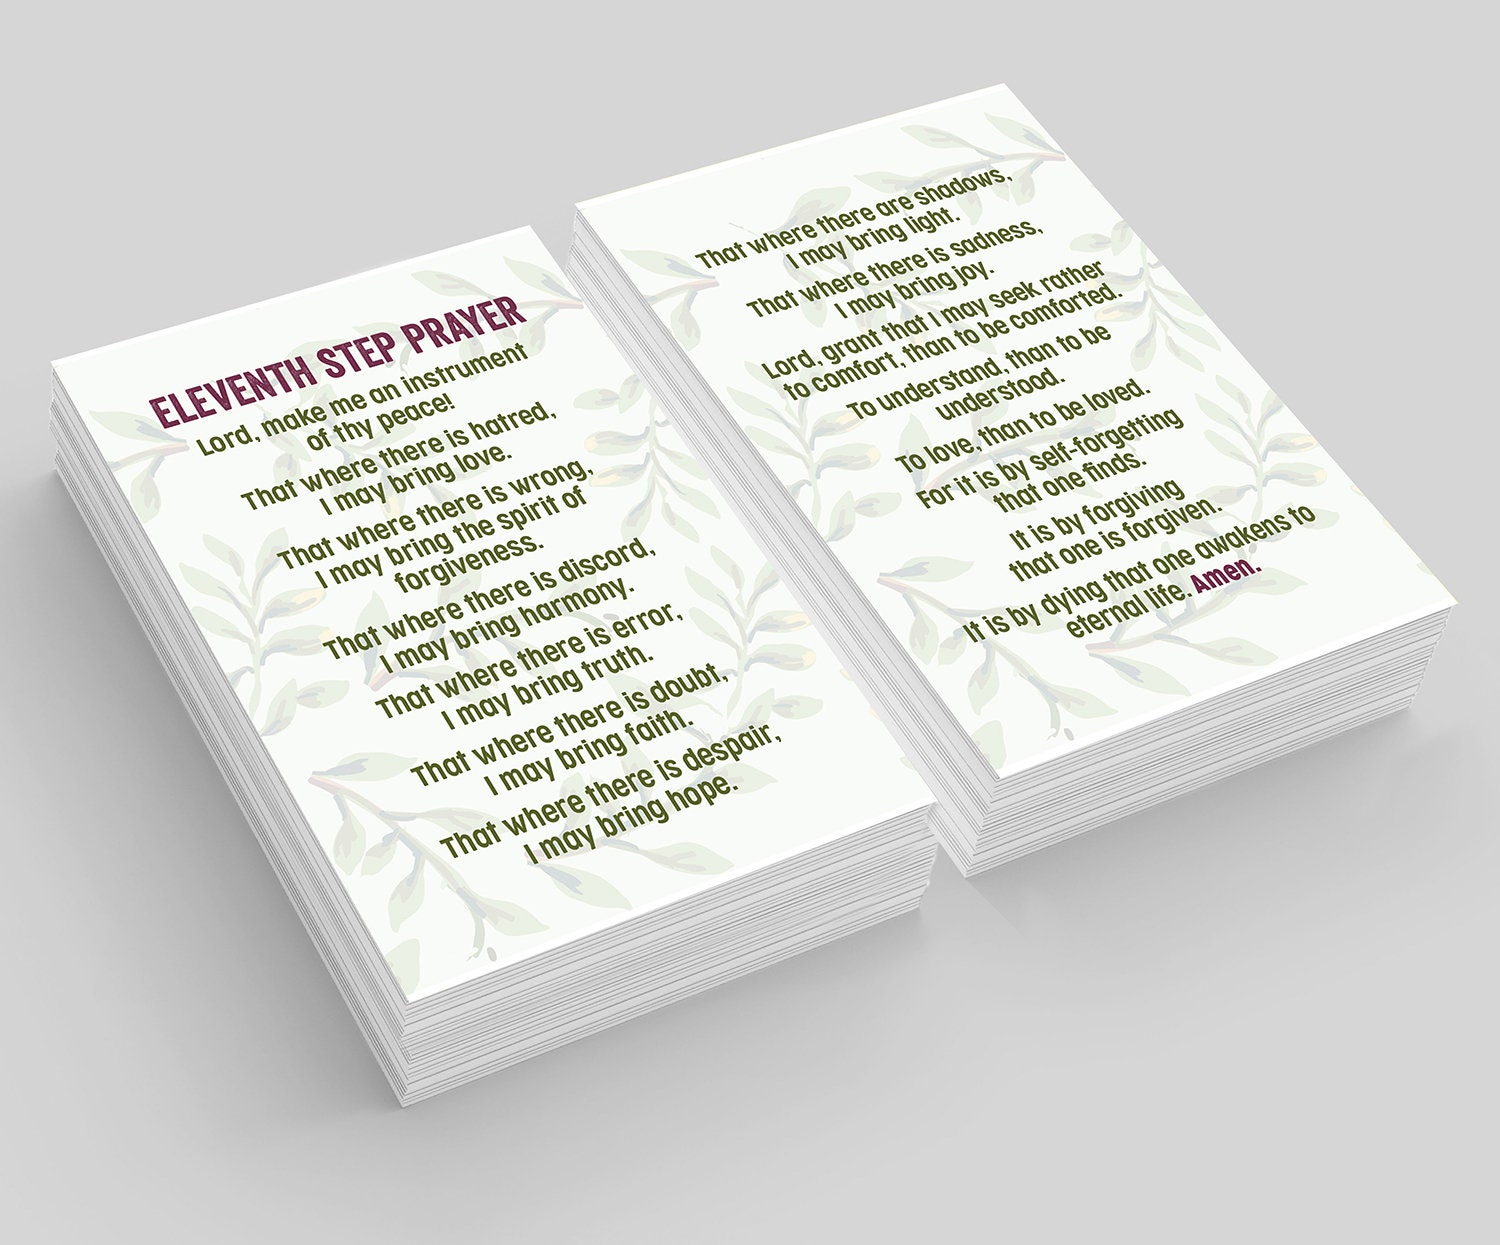 Recovery Gifts: Eleventh Step Prayer Wallet Cards—Pkg of 10